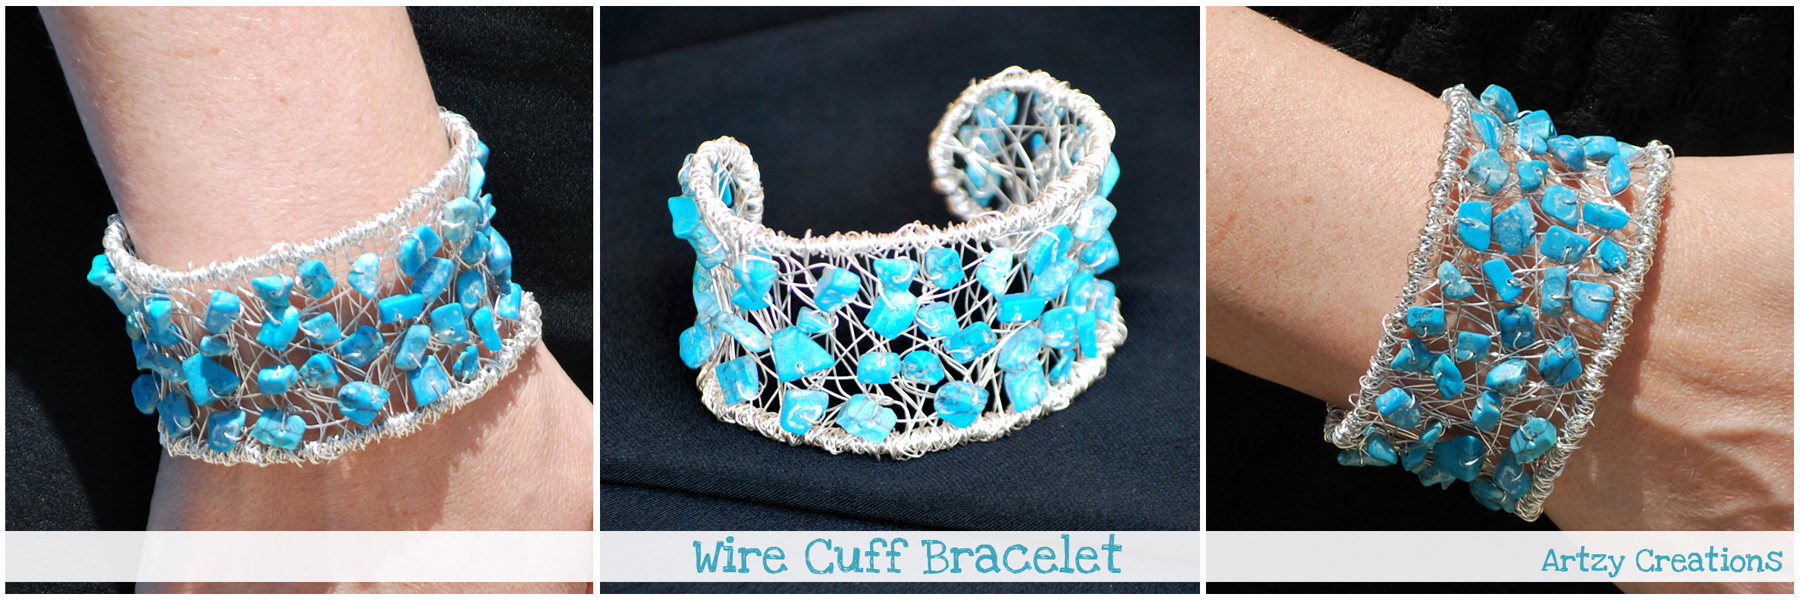 DIY Wire Wrapped Cuff Bracelet - artzycreations.com